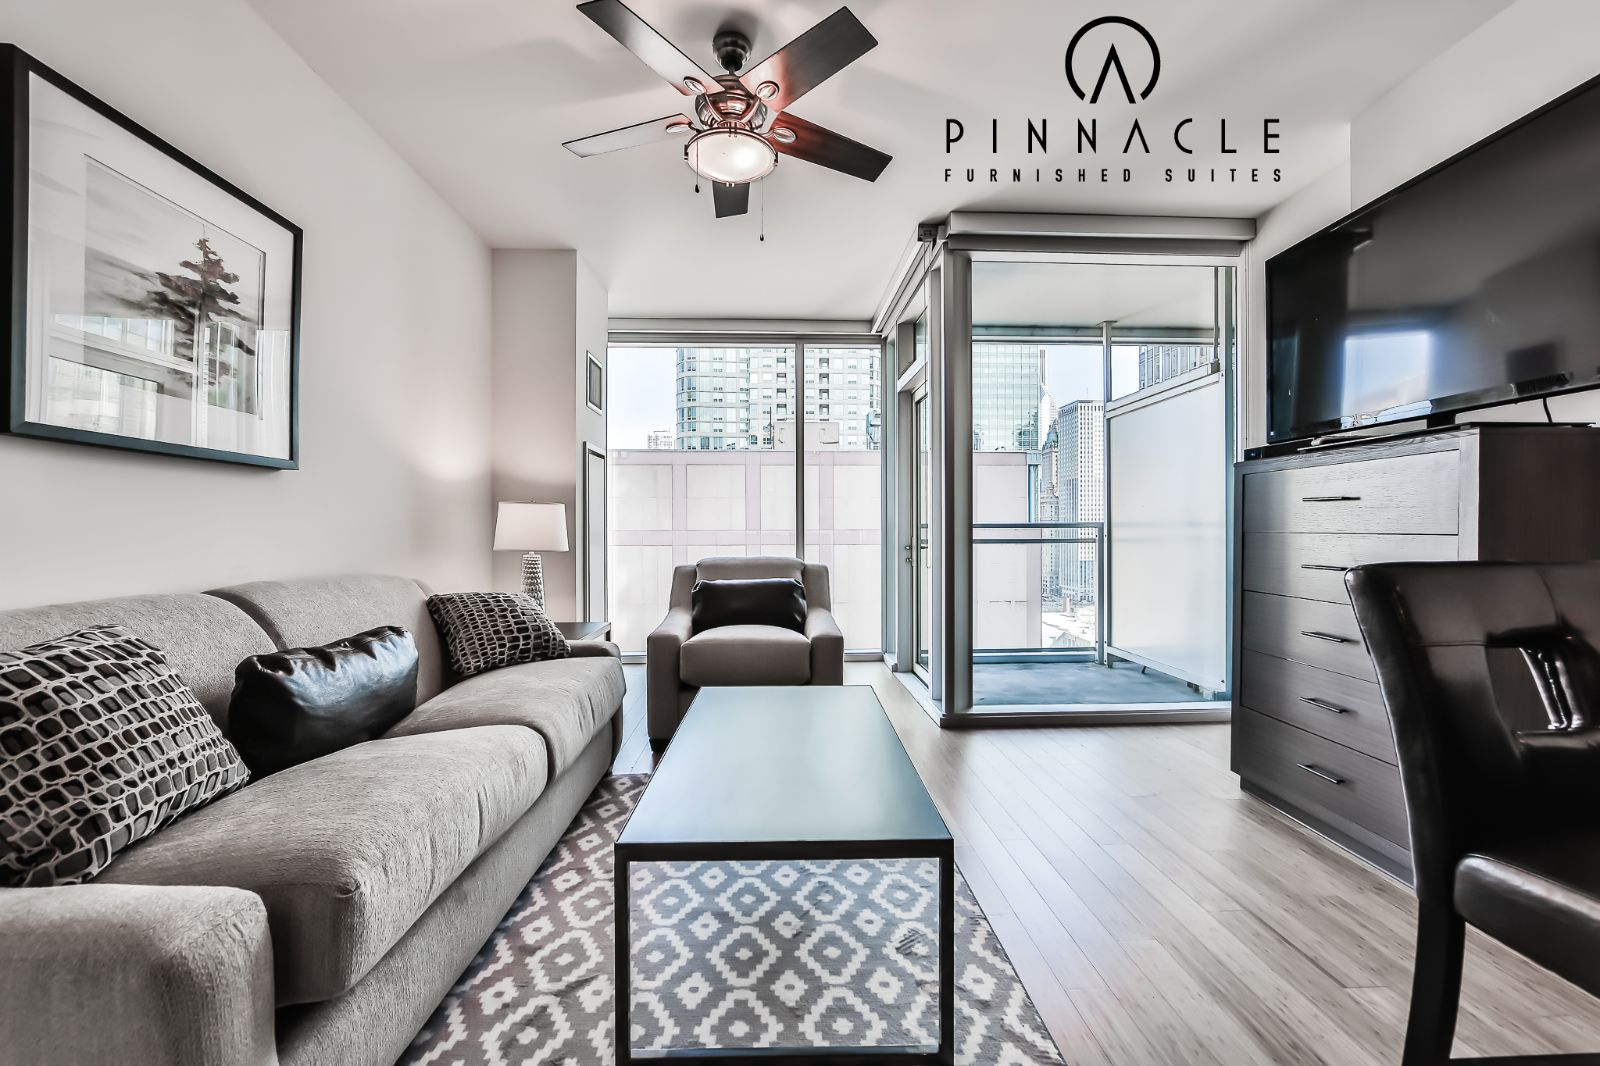 Env chicago alcove studio 07 pinnacle furnished suites for Alcove studio